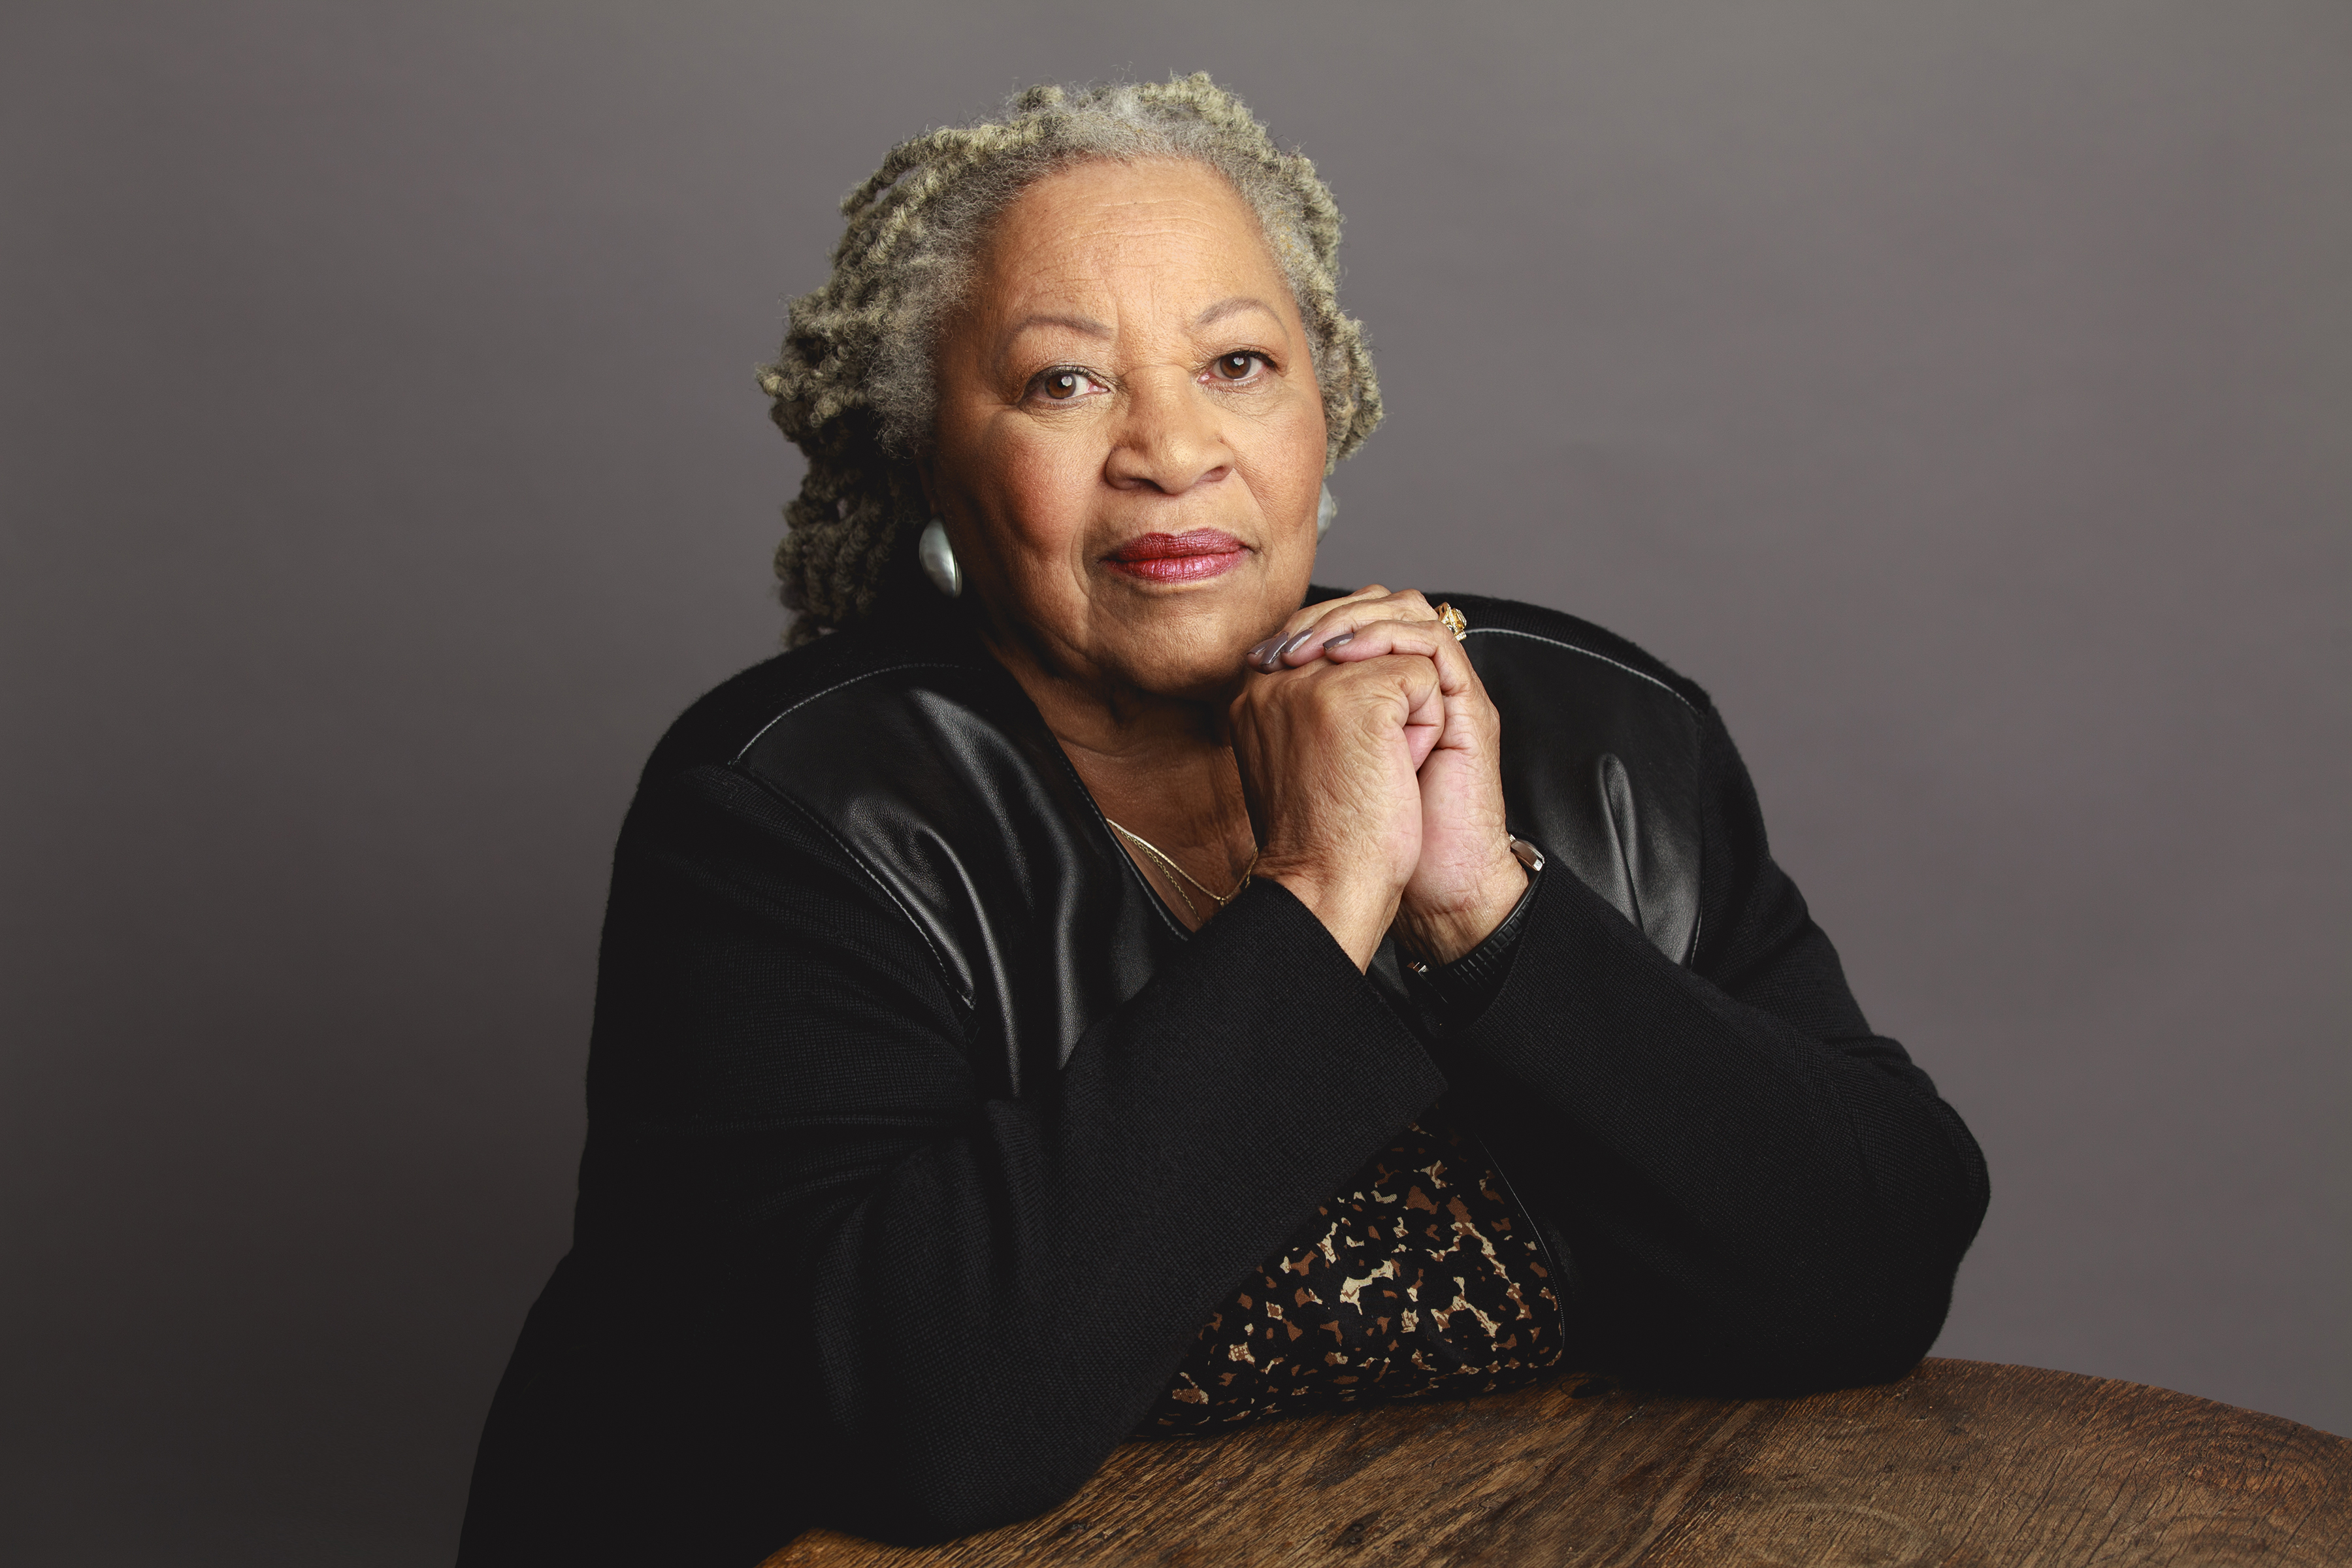 4-TONI-MORRISON-THE-PIECES-I-AM-subject-Toni-Morrison--2015-.-Photo-credit-Timothy-Greenfield-Sanders